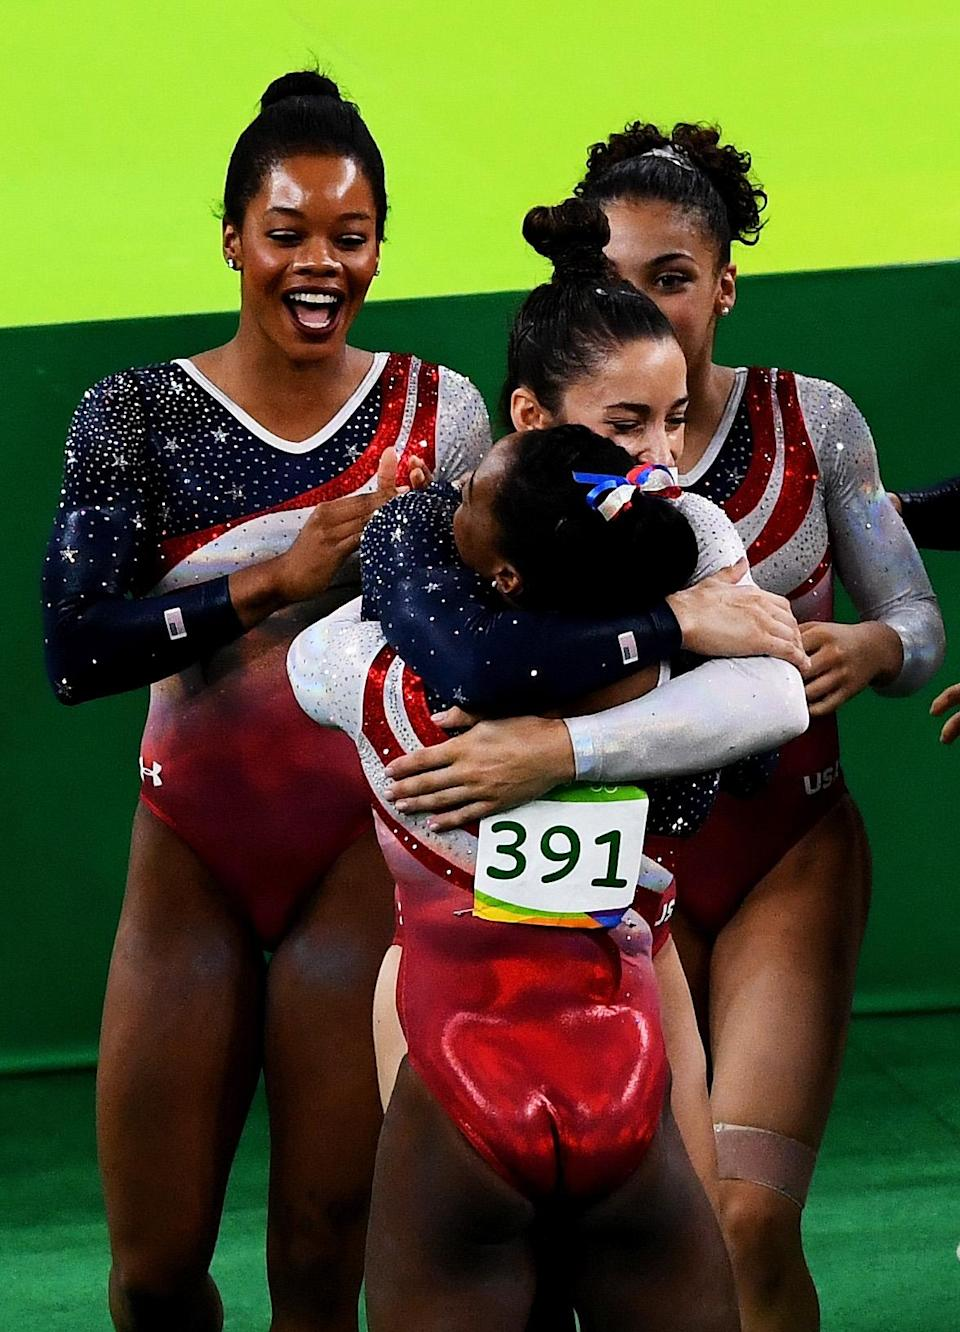 <p>Simone Biles (front) of the United States is congratulated by her team mates on the floor during the Artistic Gymnastics Women's Team Final on Day 4 of the Rio 2016 Olympic Games at the Rio Olympic Arena on August 9, 2016 in Rio de Janeiro, Brazil. (Photo by Quinn Rooney/Getty Images) </p>